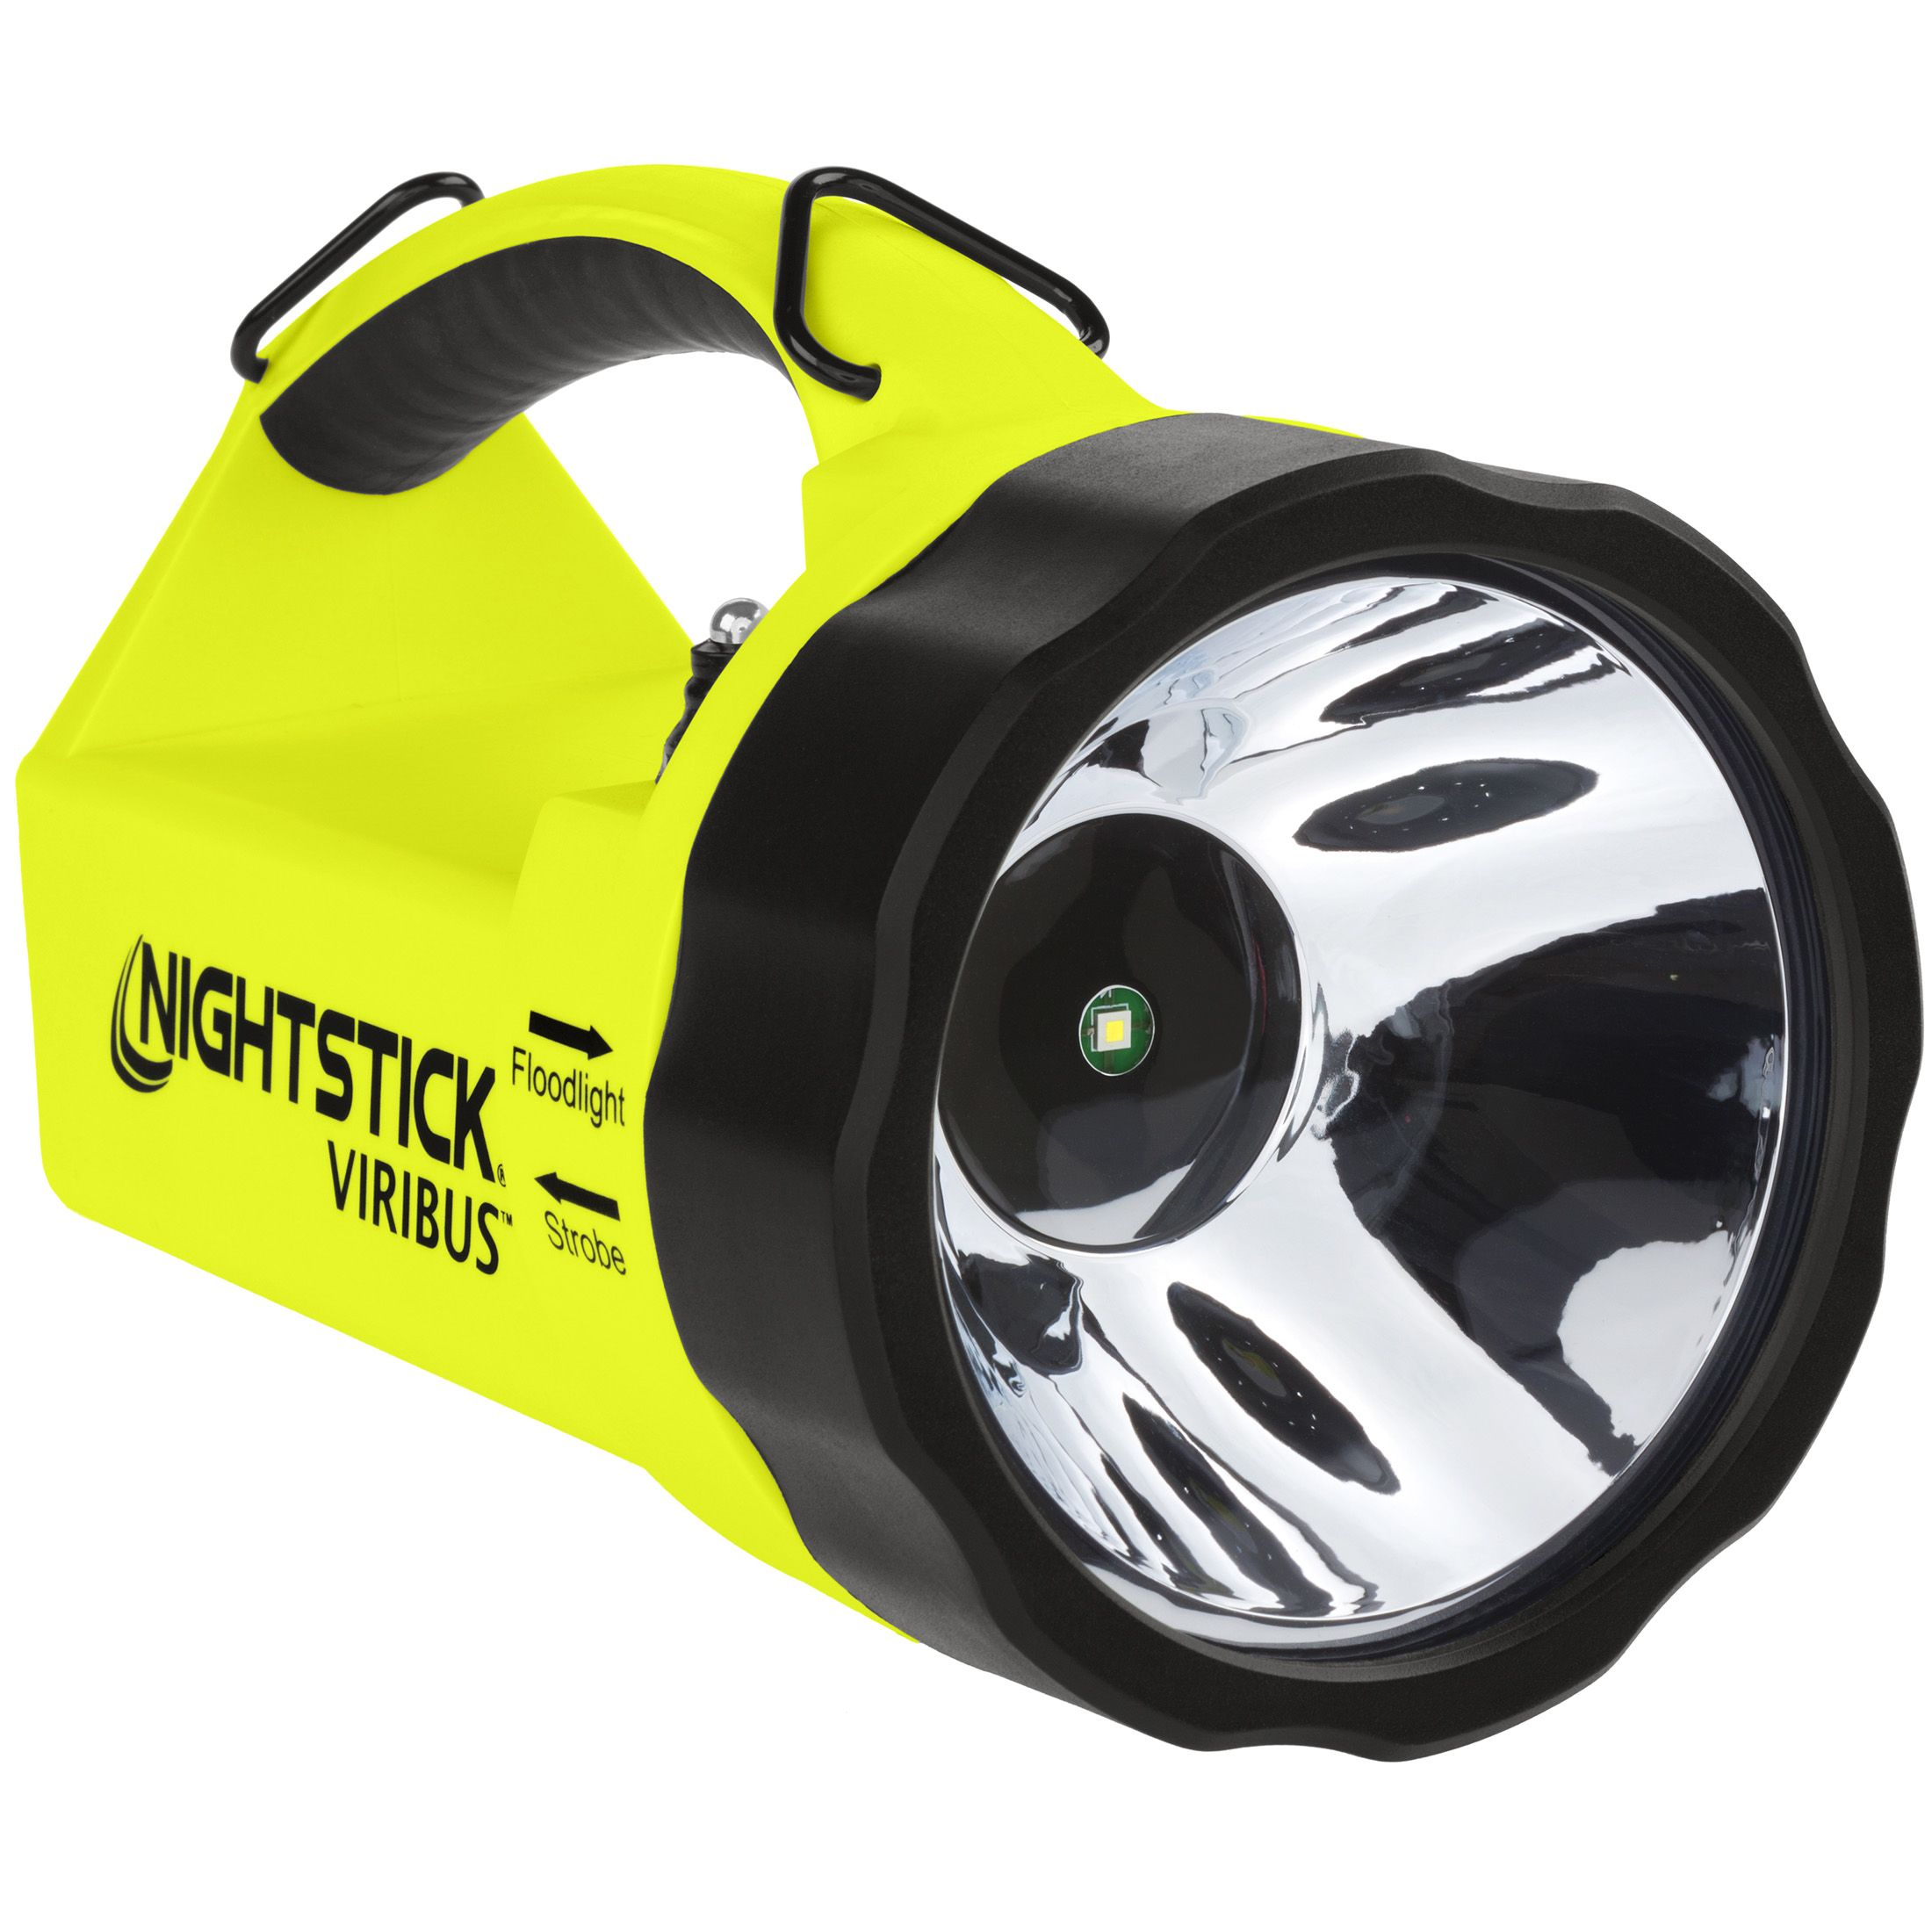 VIRIBUS IS-Certified Rechargeable Dual-Light™ LED Lantern